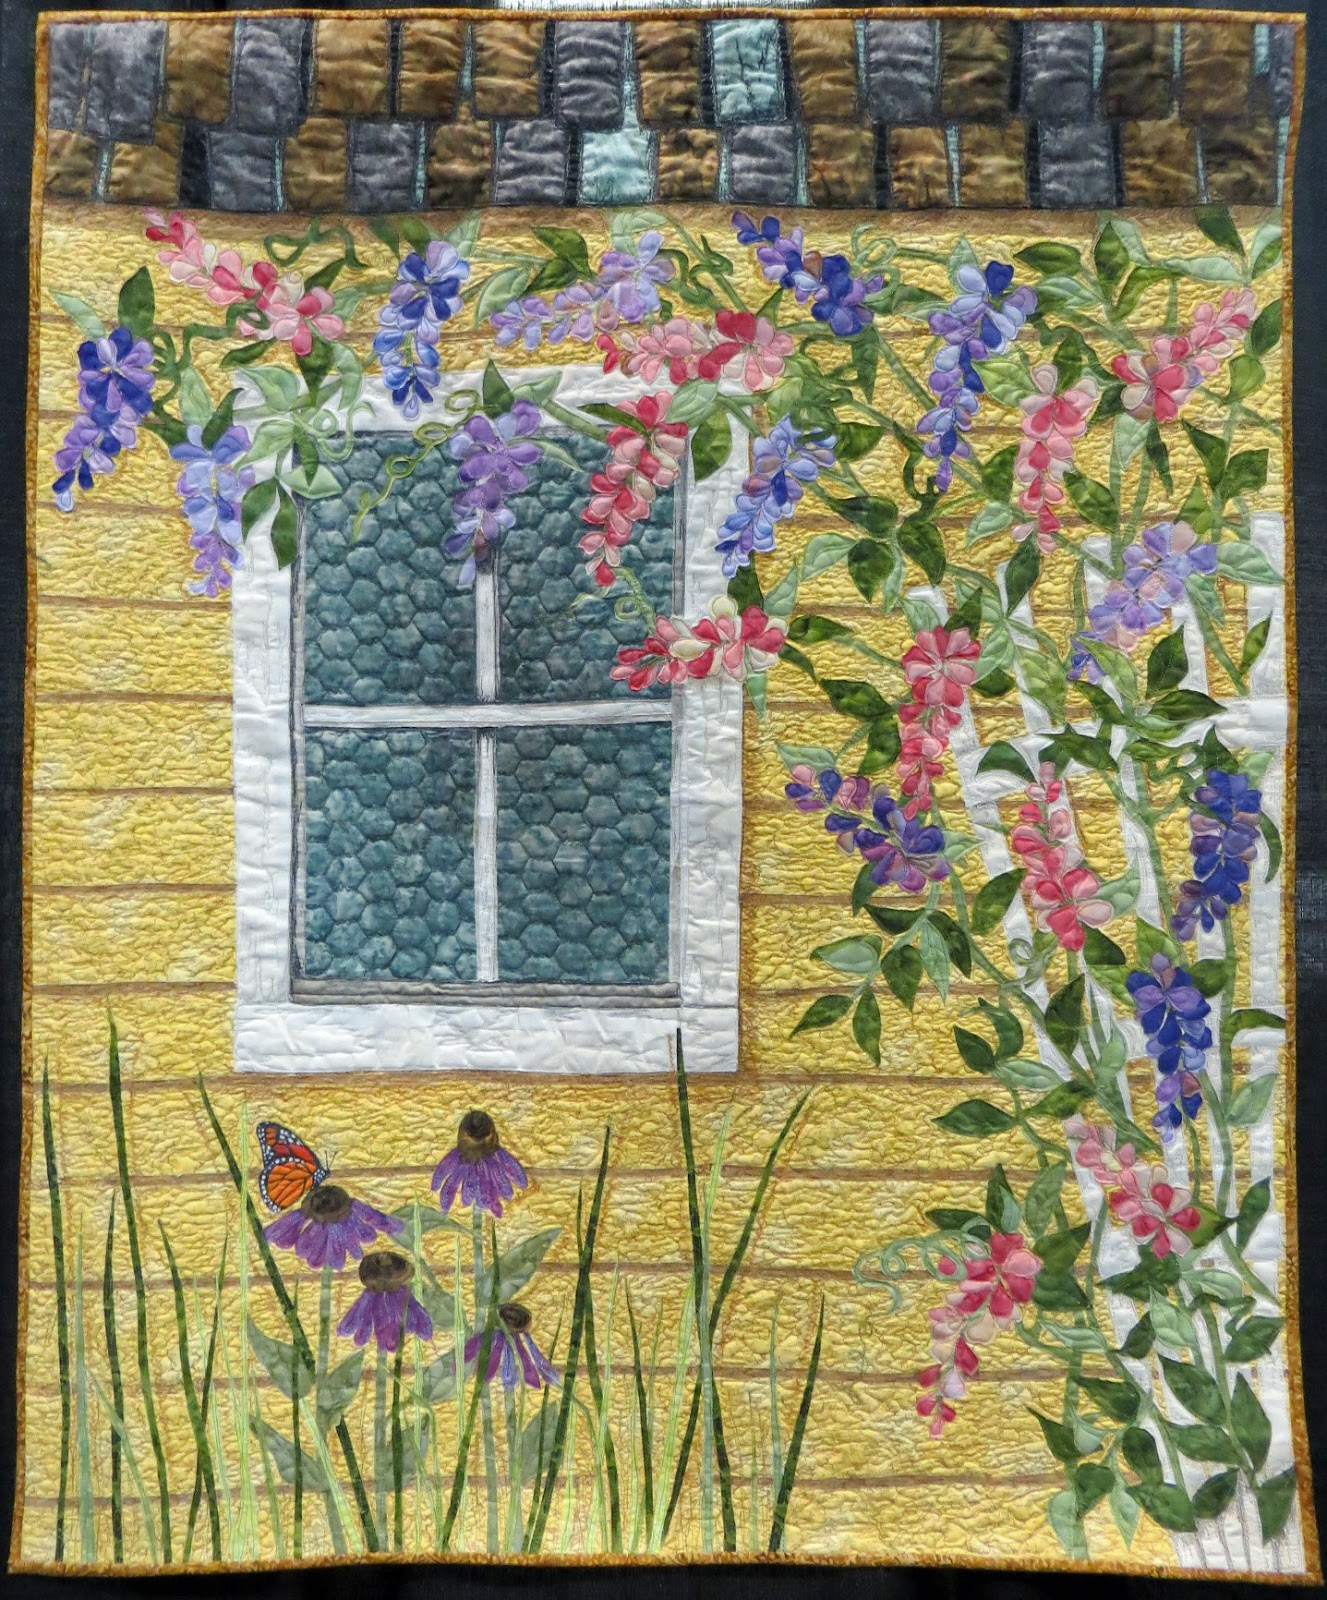 Cathy geier 39 s quilty art blog in full bloom and flower for Garden shed quilting